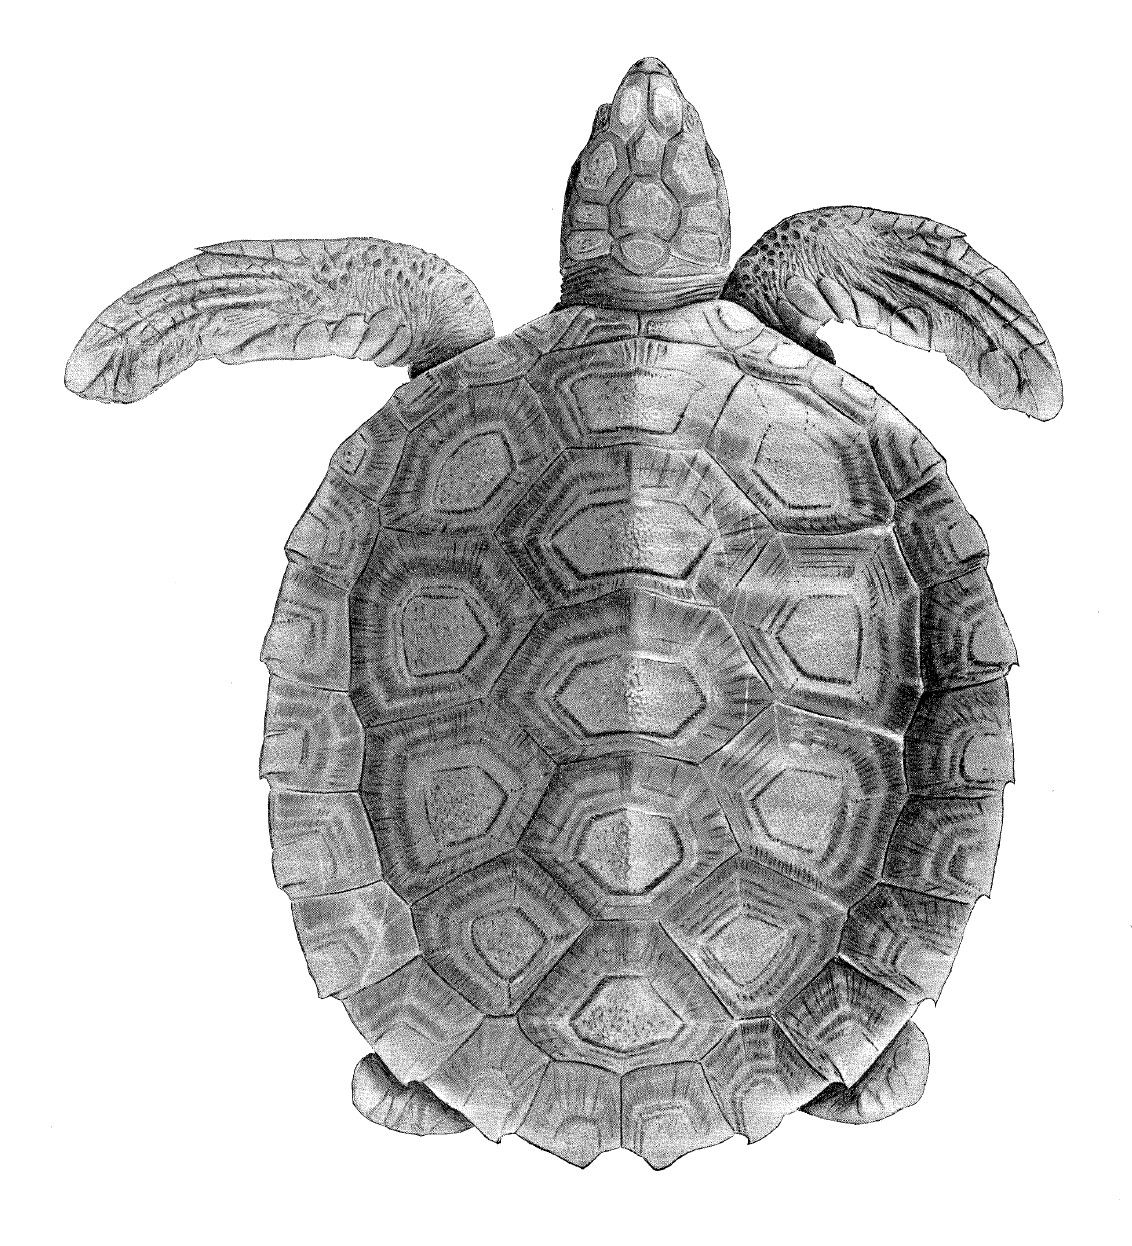 turtle anatomy and physiology - Google Search | Current Reference ...